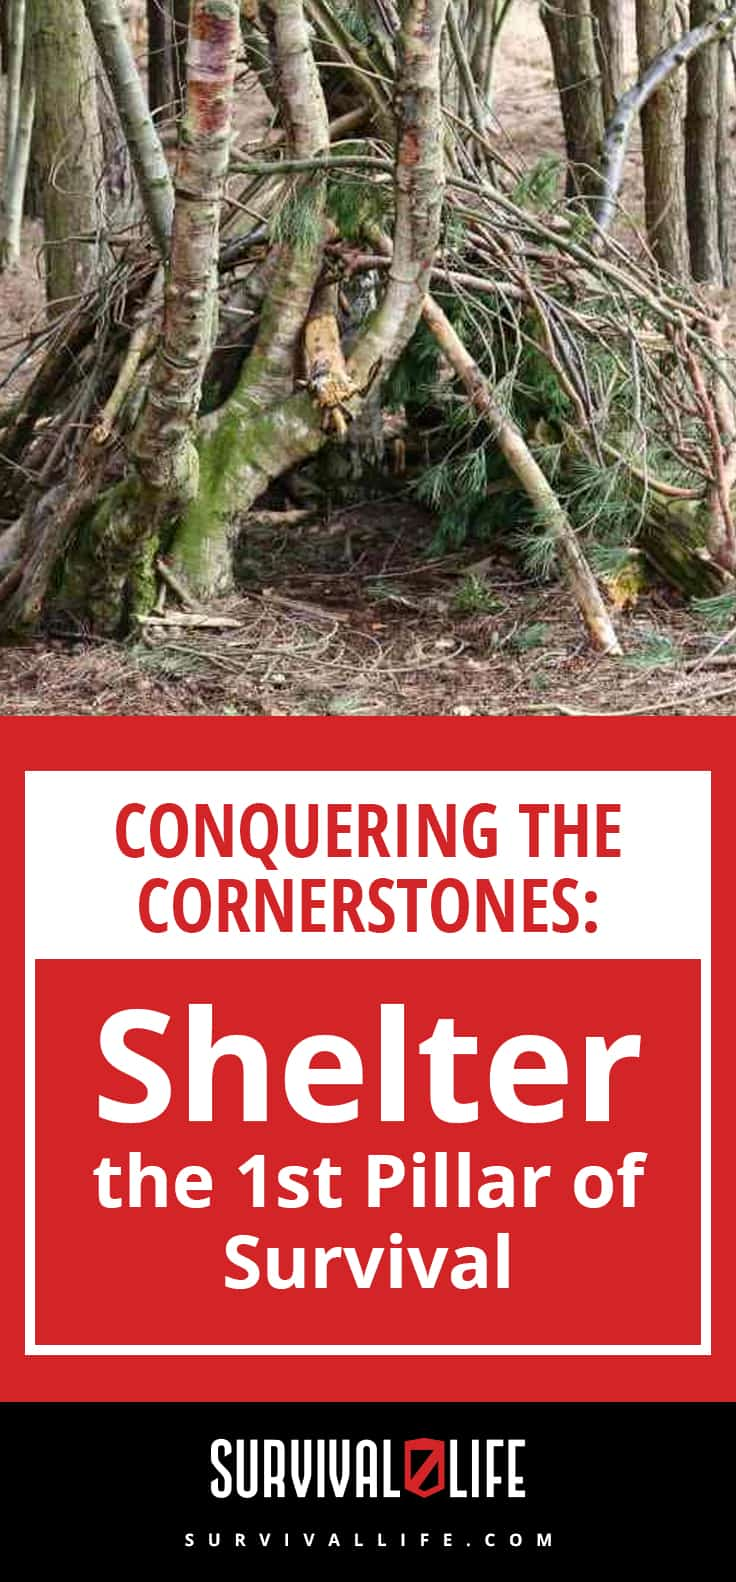 Shelter   Conquering the Cornerstones: Shelter - the 1st Pillar of Survival